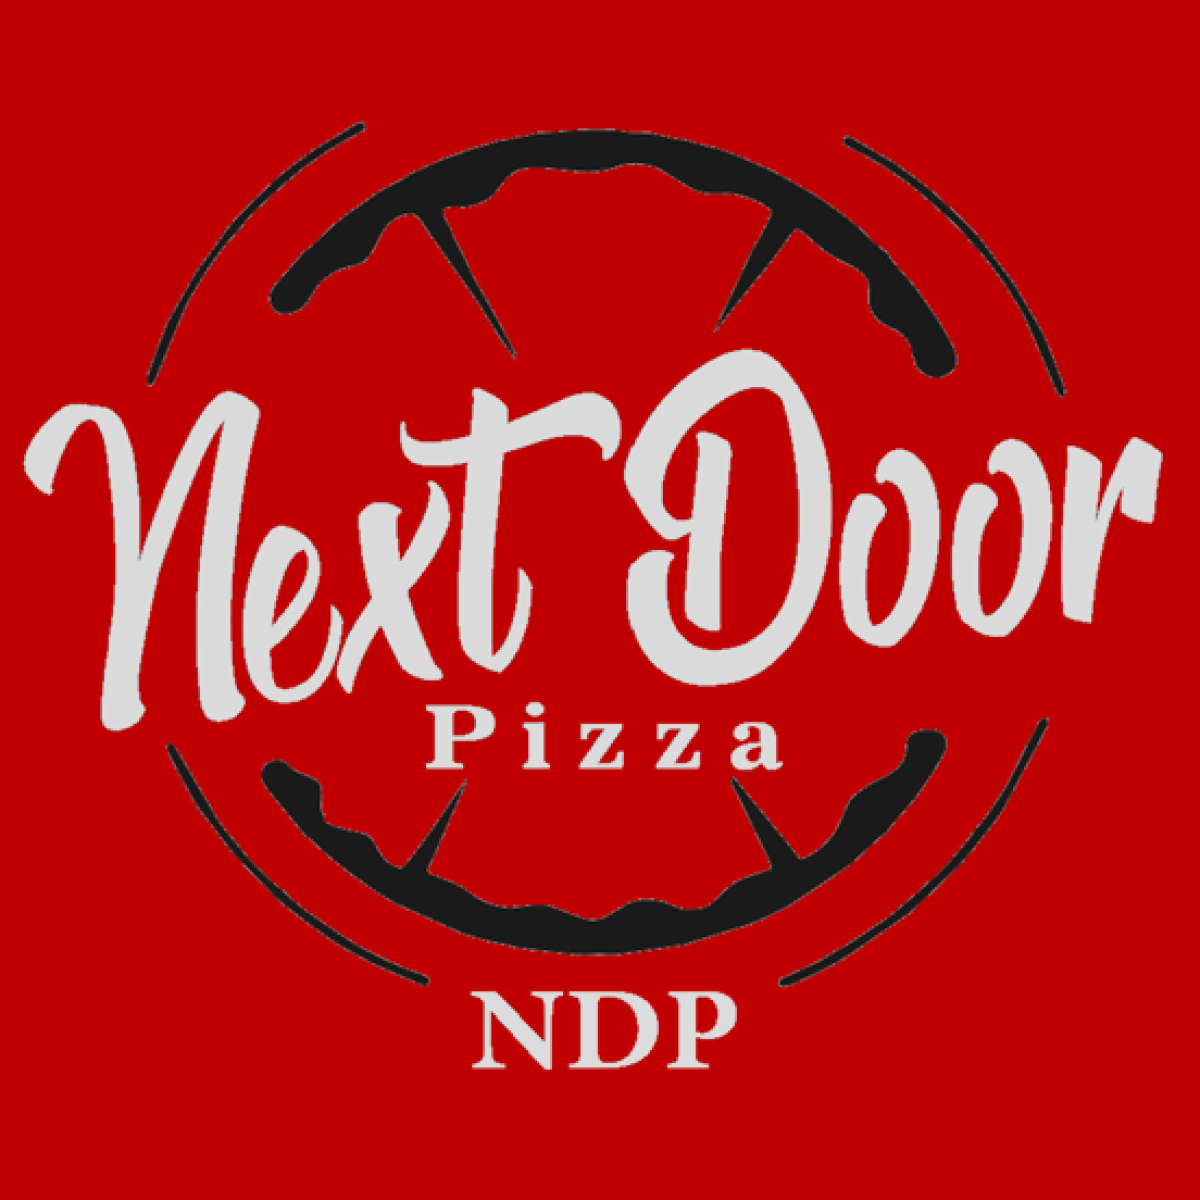 Next Door Pizza